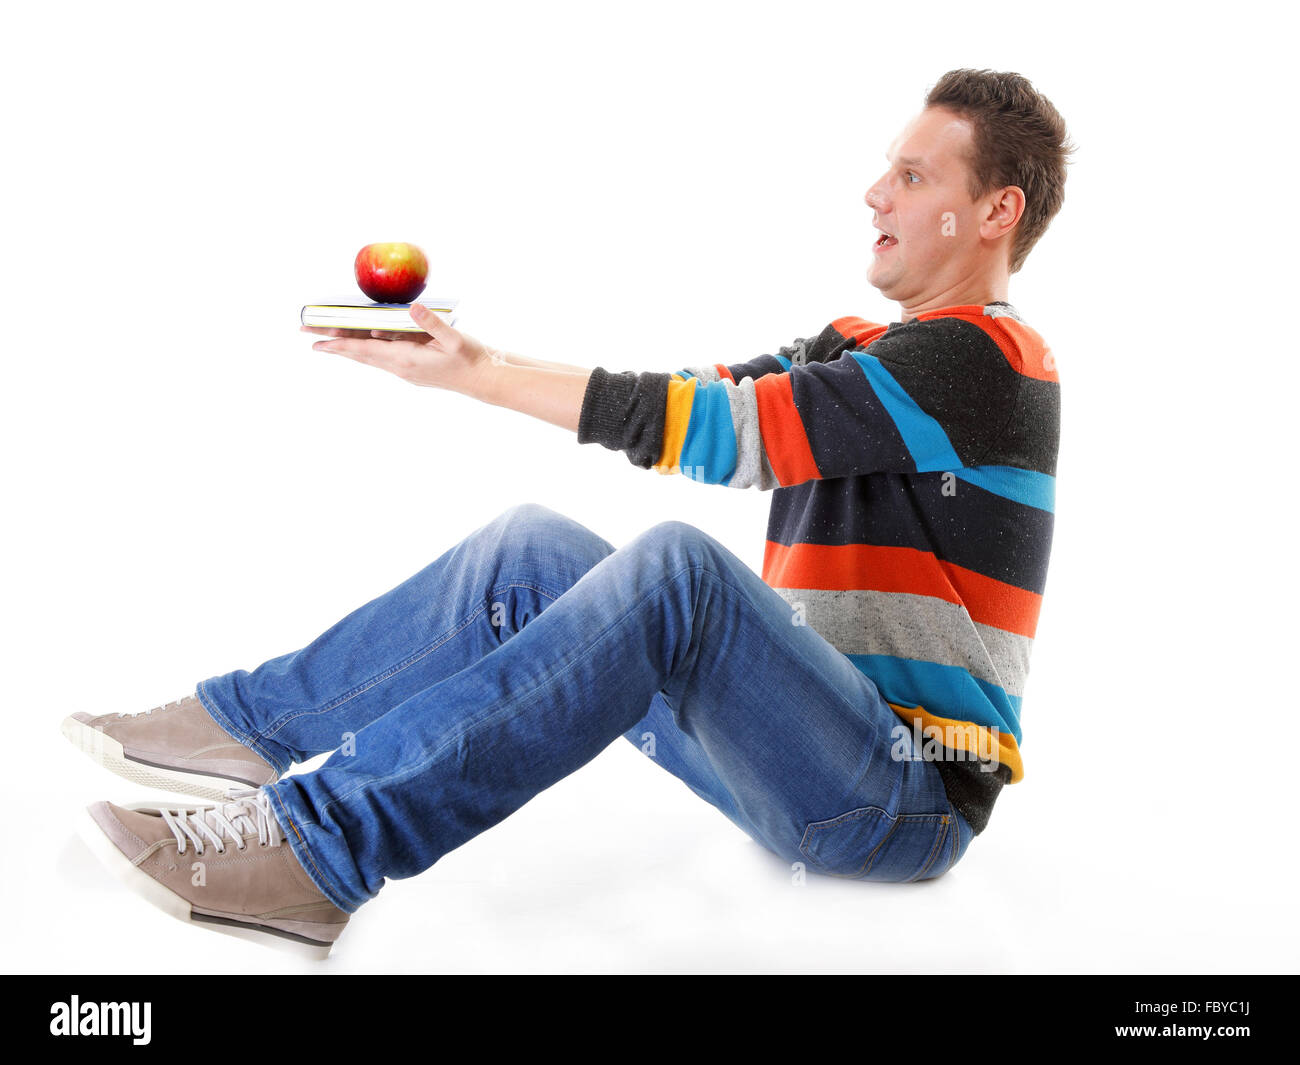 Man holding a book and one red apple full body - Stock Image